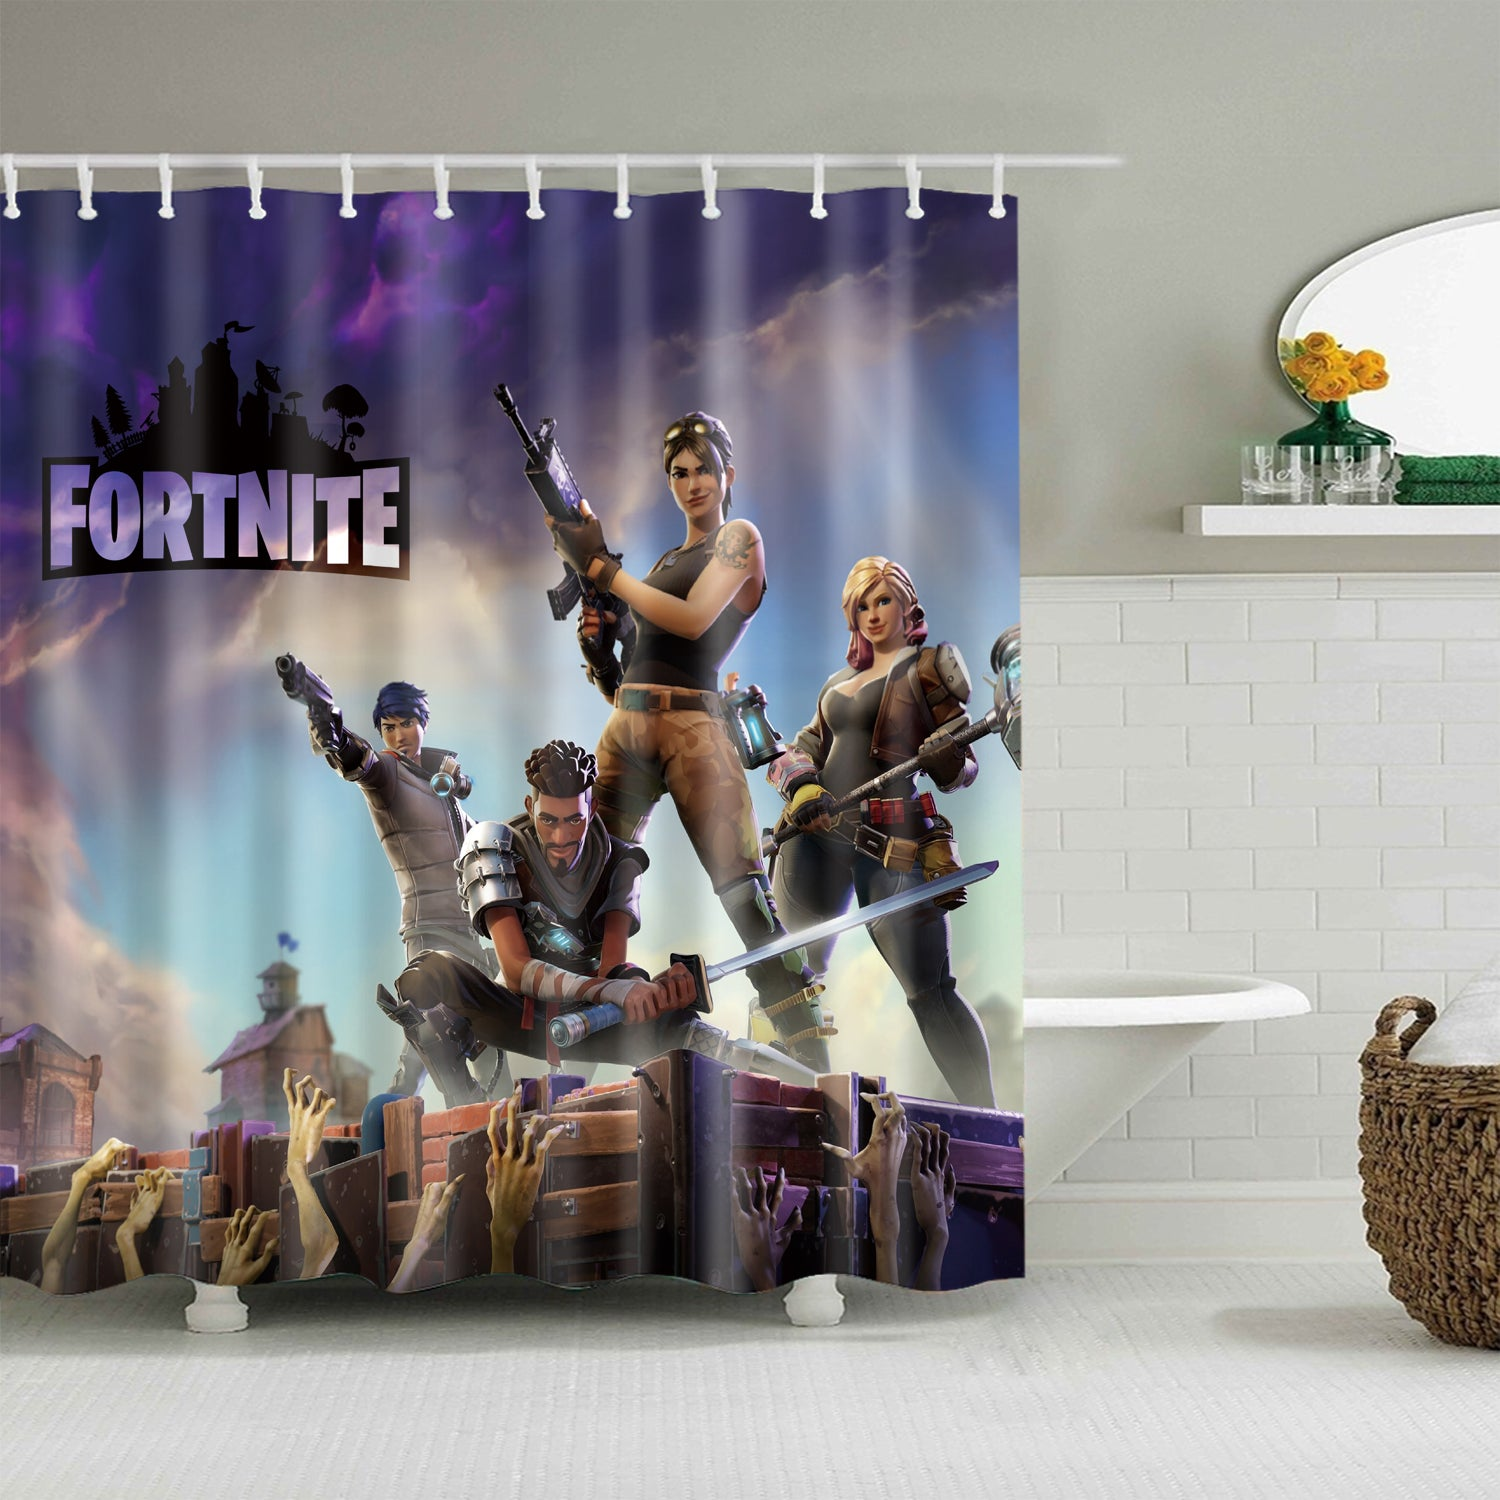 Video Game Kids Fortnite Disaster Shower Curtain